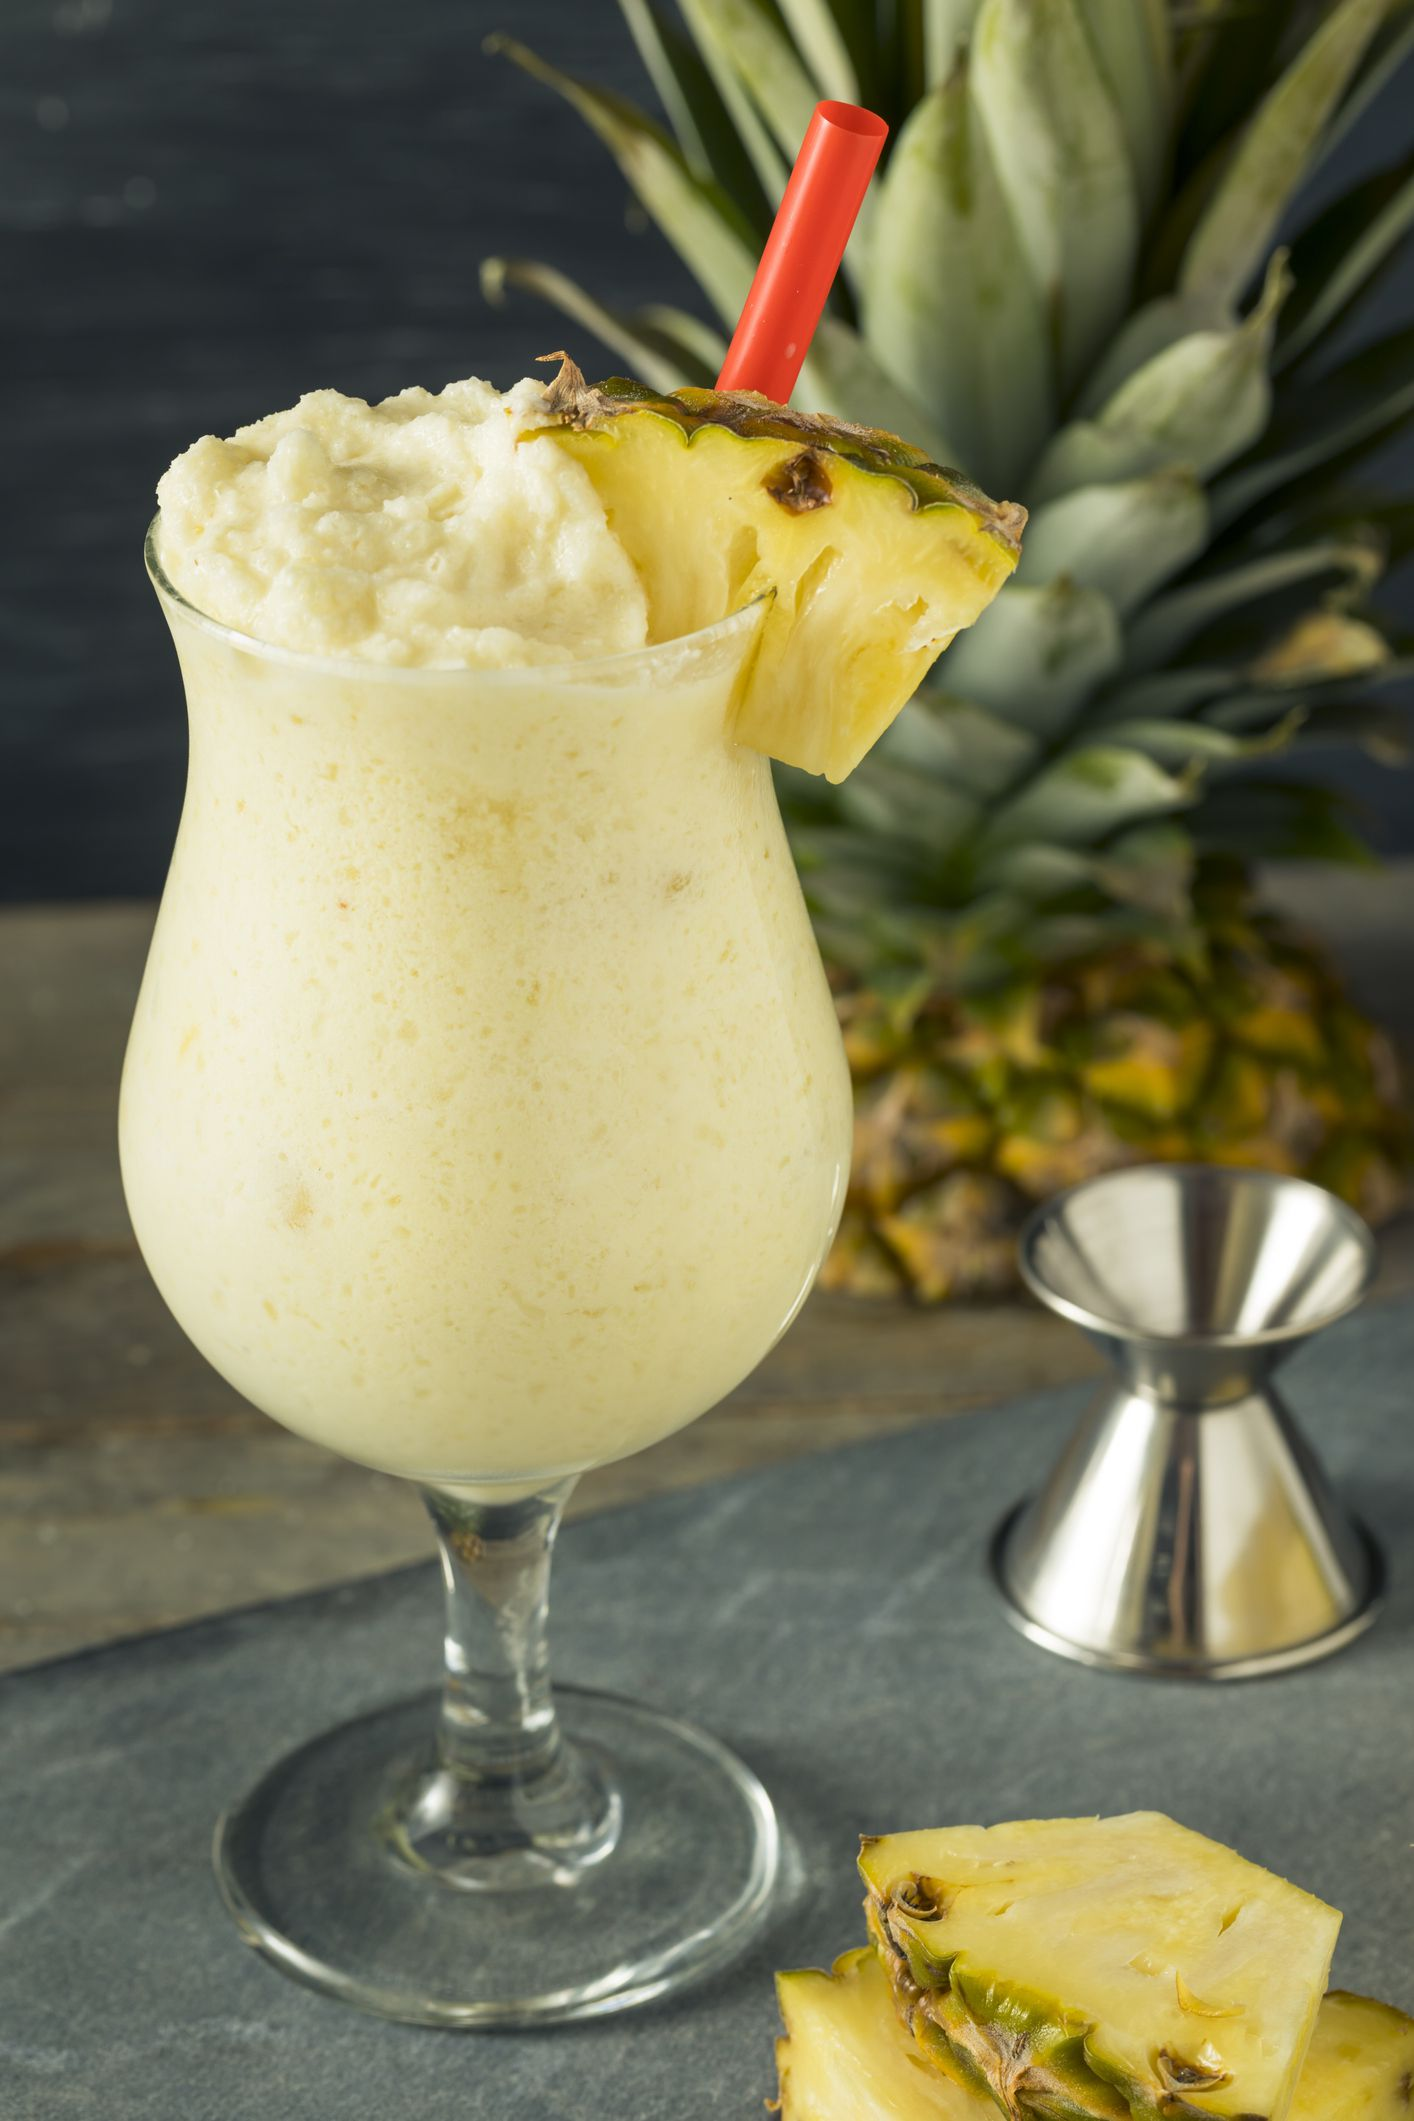 The 9 Best Rums for Piña Coladas in 2021